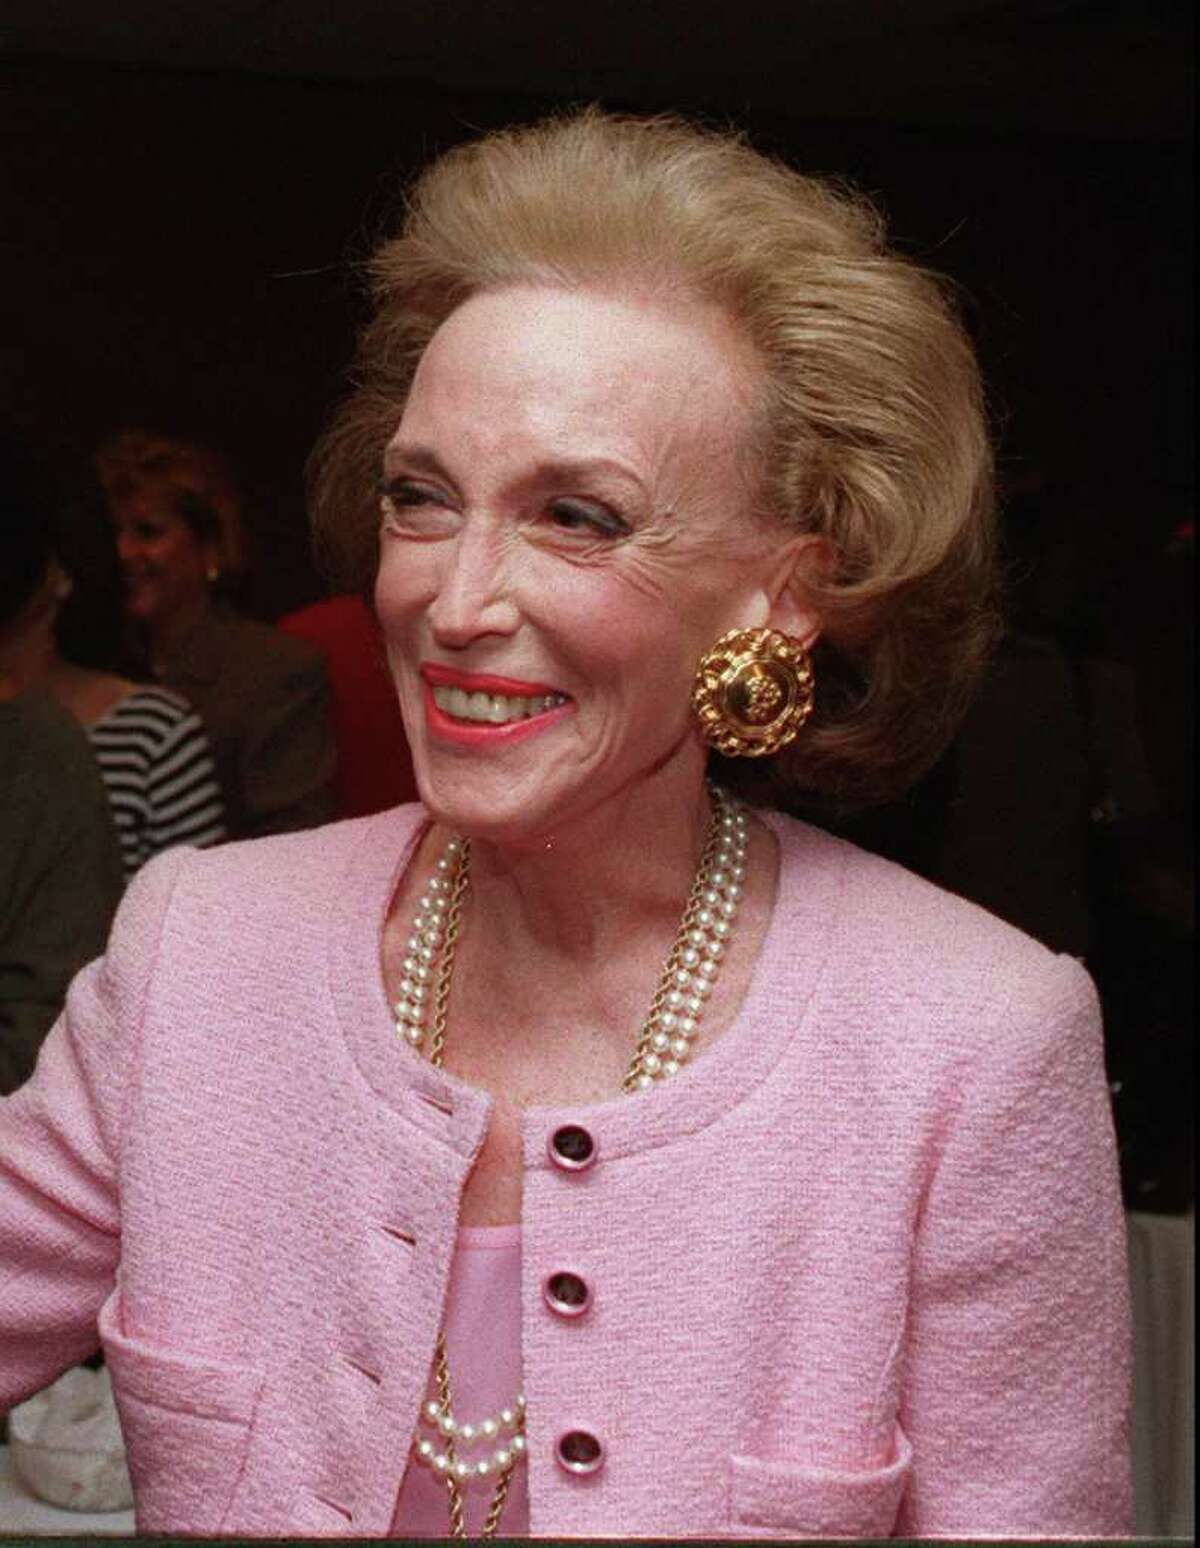 Helen Gurley Brown, who invented the concept of the have-it-all Cosmo girl, is shown in this March 1995 file photo. Brown, who spent more then three decades as editor-in-chief of Cosmopolitan Magazine, has given a $30 million gift to the Columbia University Graduate School of Journalism and Stanford University's School of Engineering in honor of her late husband, David Brown. (AP Photo/Marty Lederhandler, File)